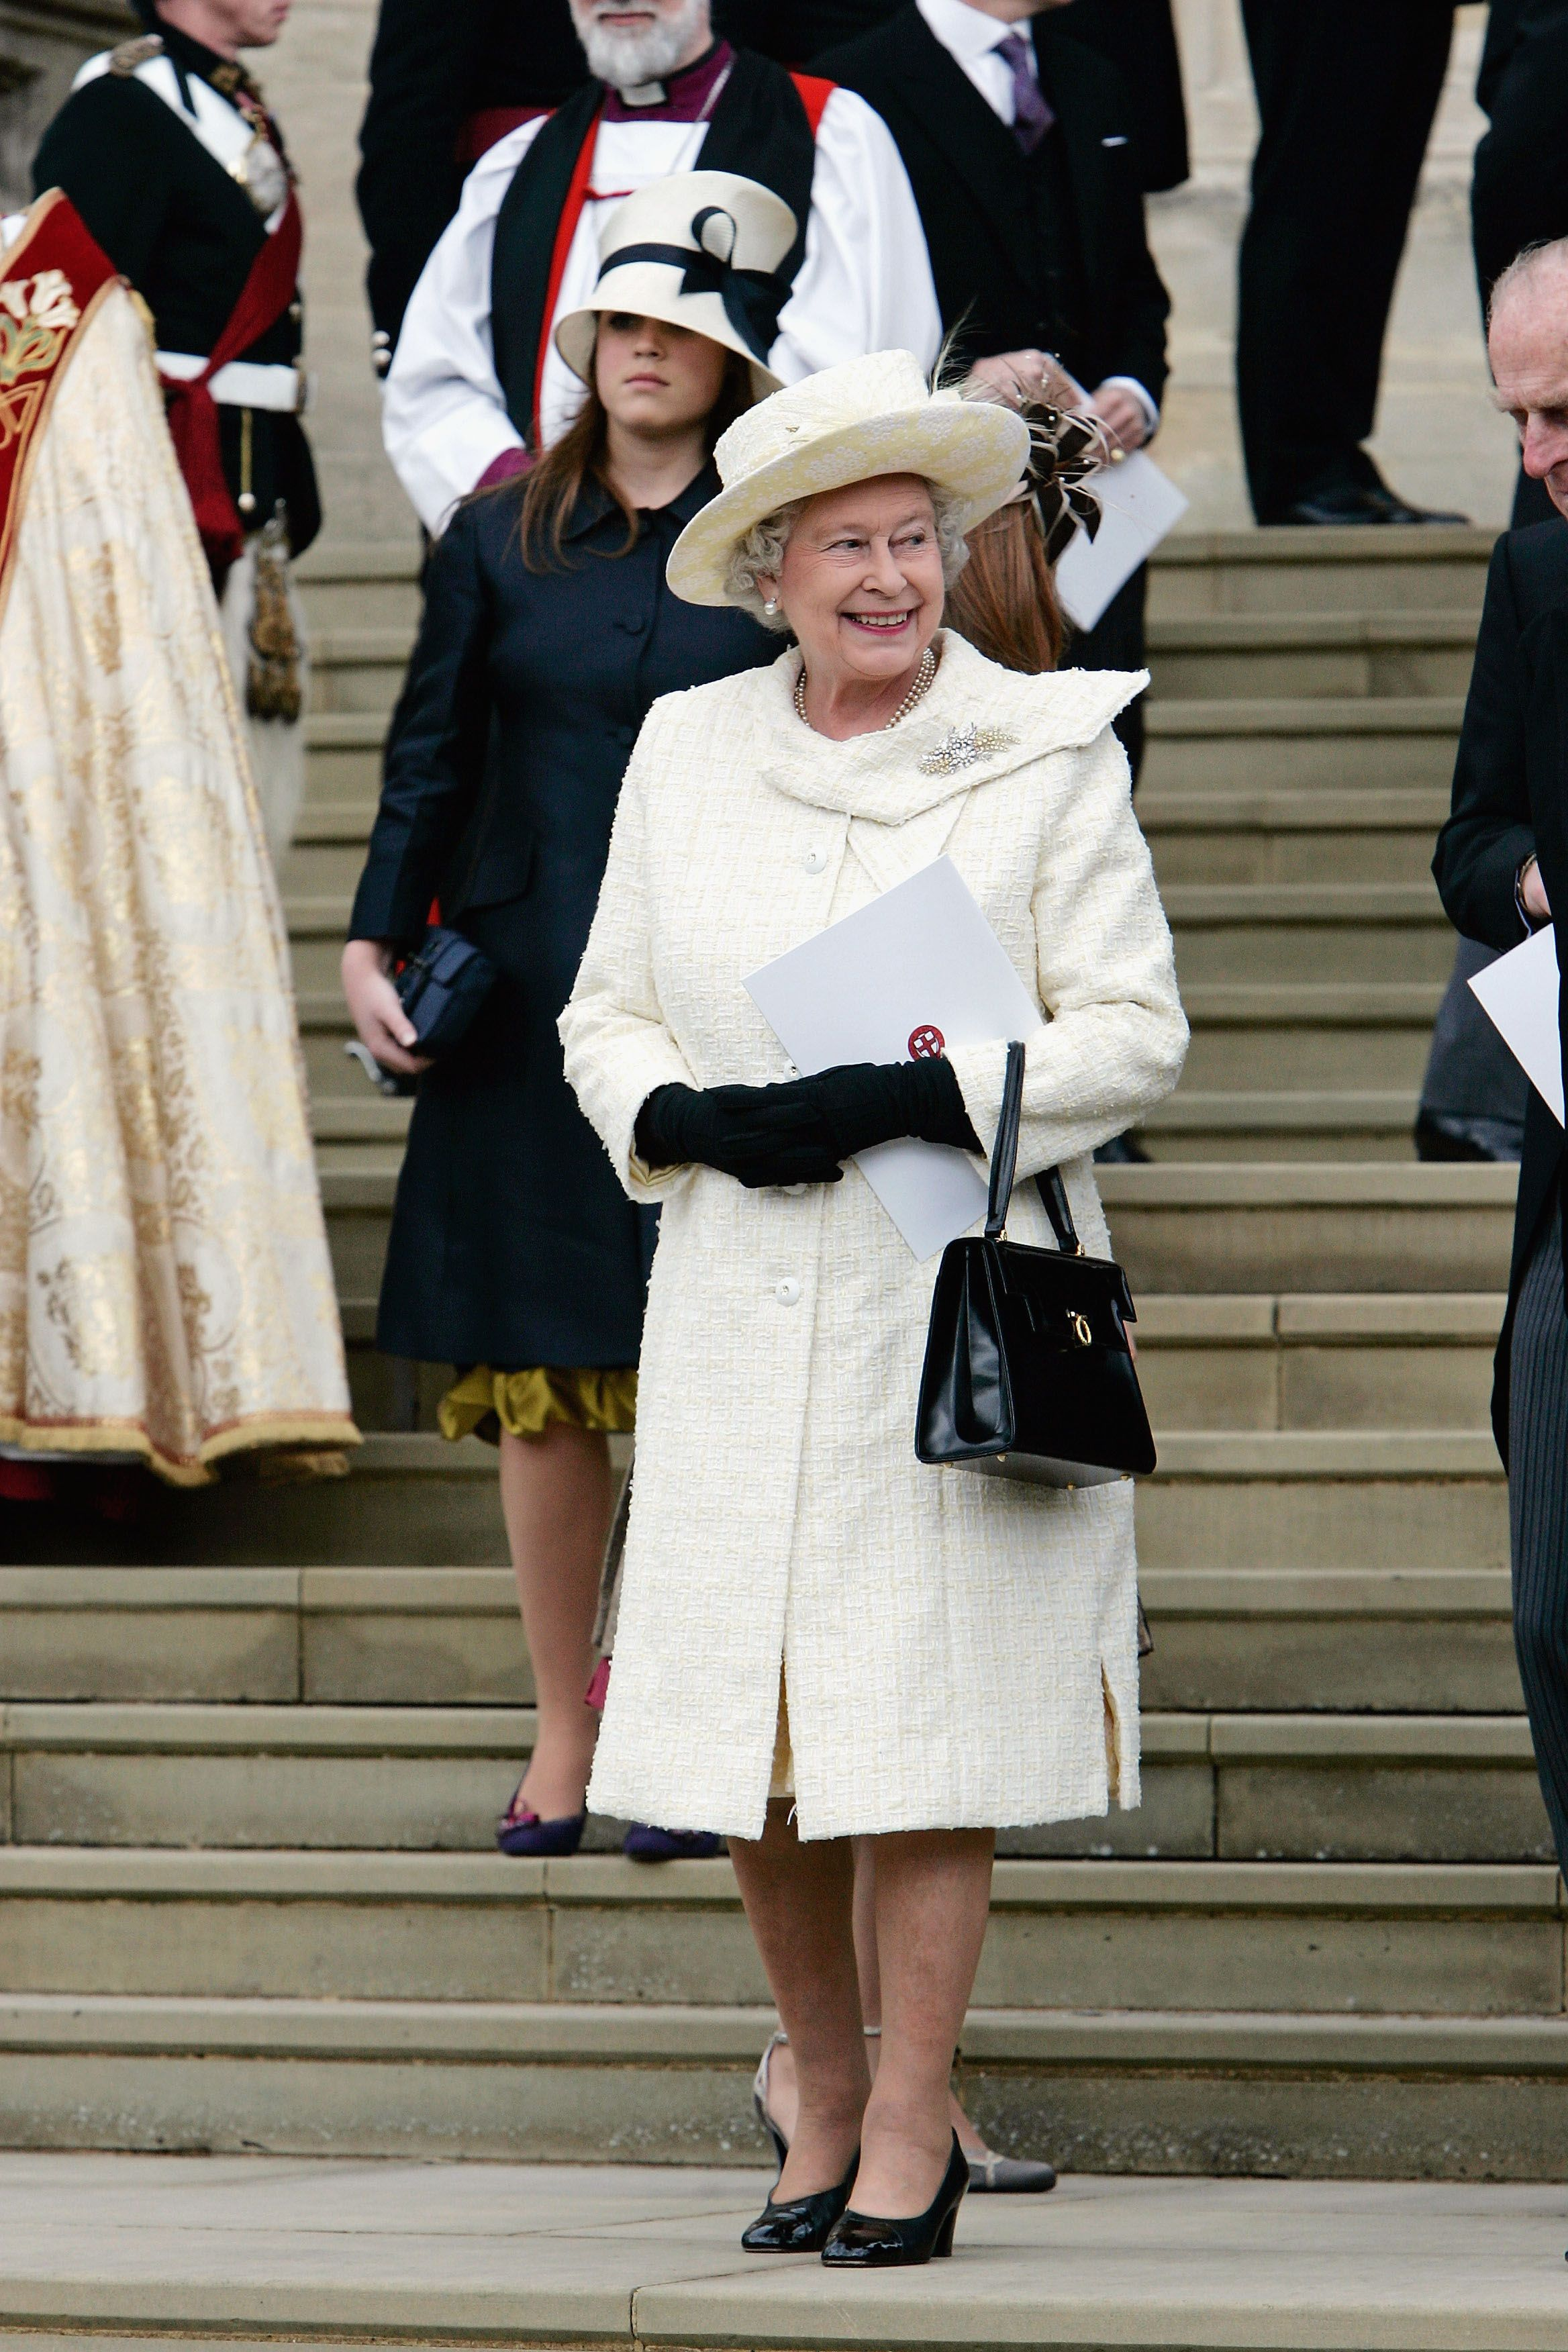 Because both Prince Charles and his wife, Camilla Parker Bowles were divorced before they wed, the couple elected to have a civil marriage ceremony followed by a blessing at Windsor Castle instead of a traditional church service. Her Majesty attended the blessing in a cream-colored coatdress with subtle patterns of yellow.